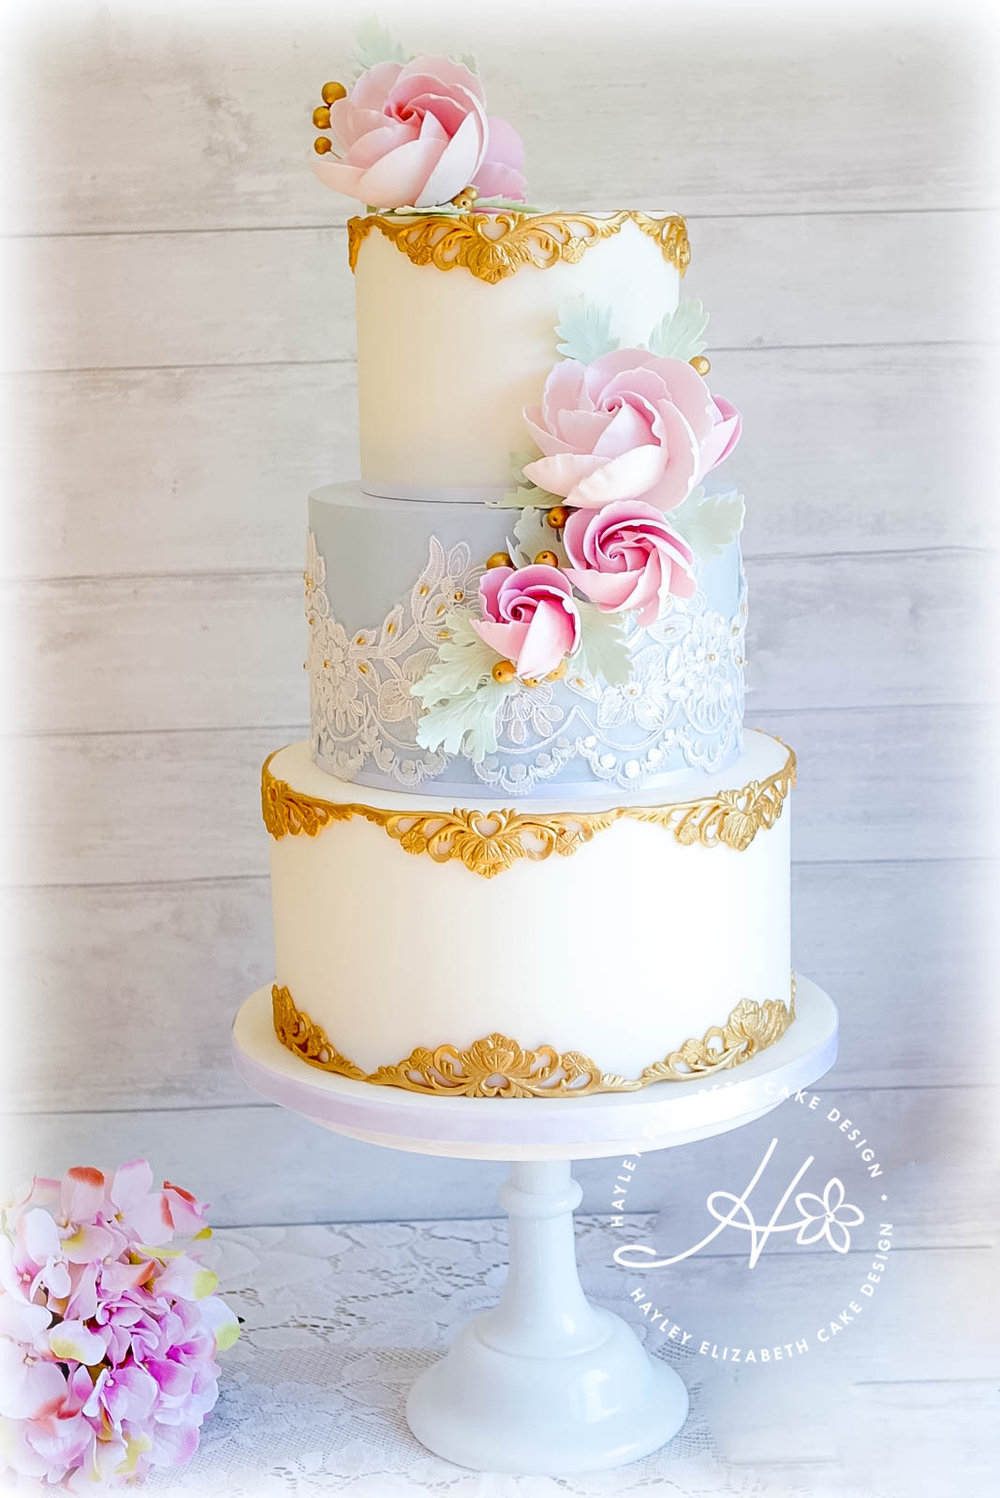 pastel-blue-and-white-wedding-cake-withgold-trim.jpg